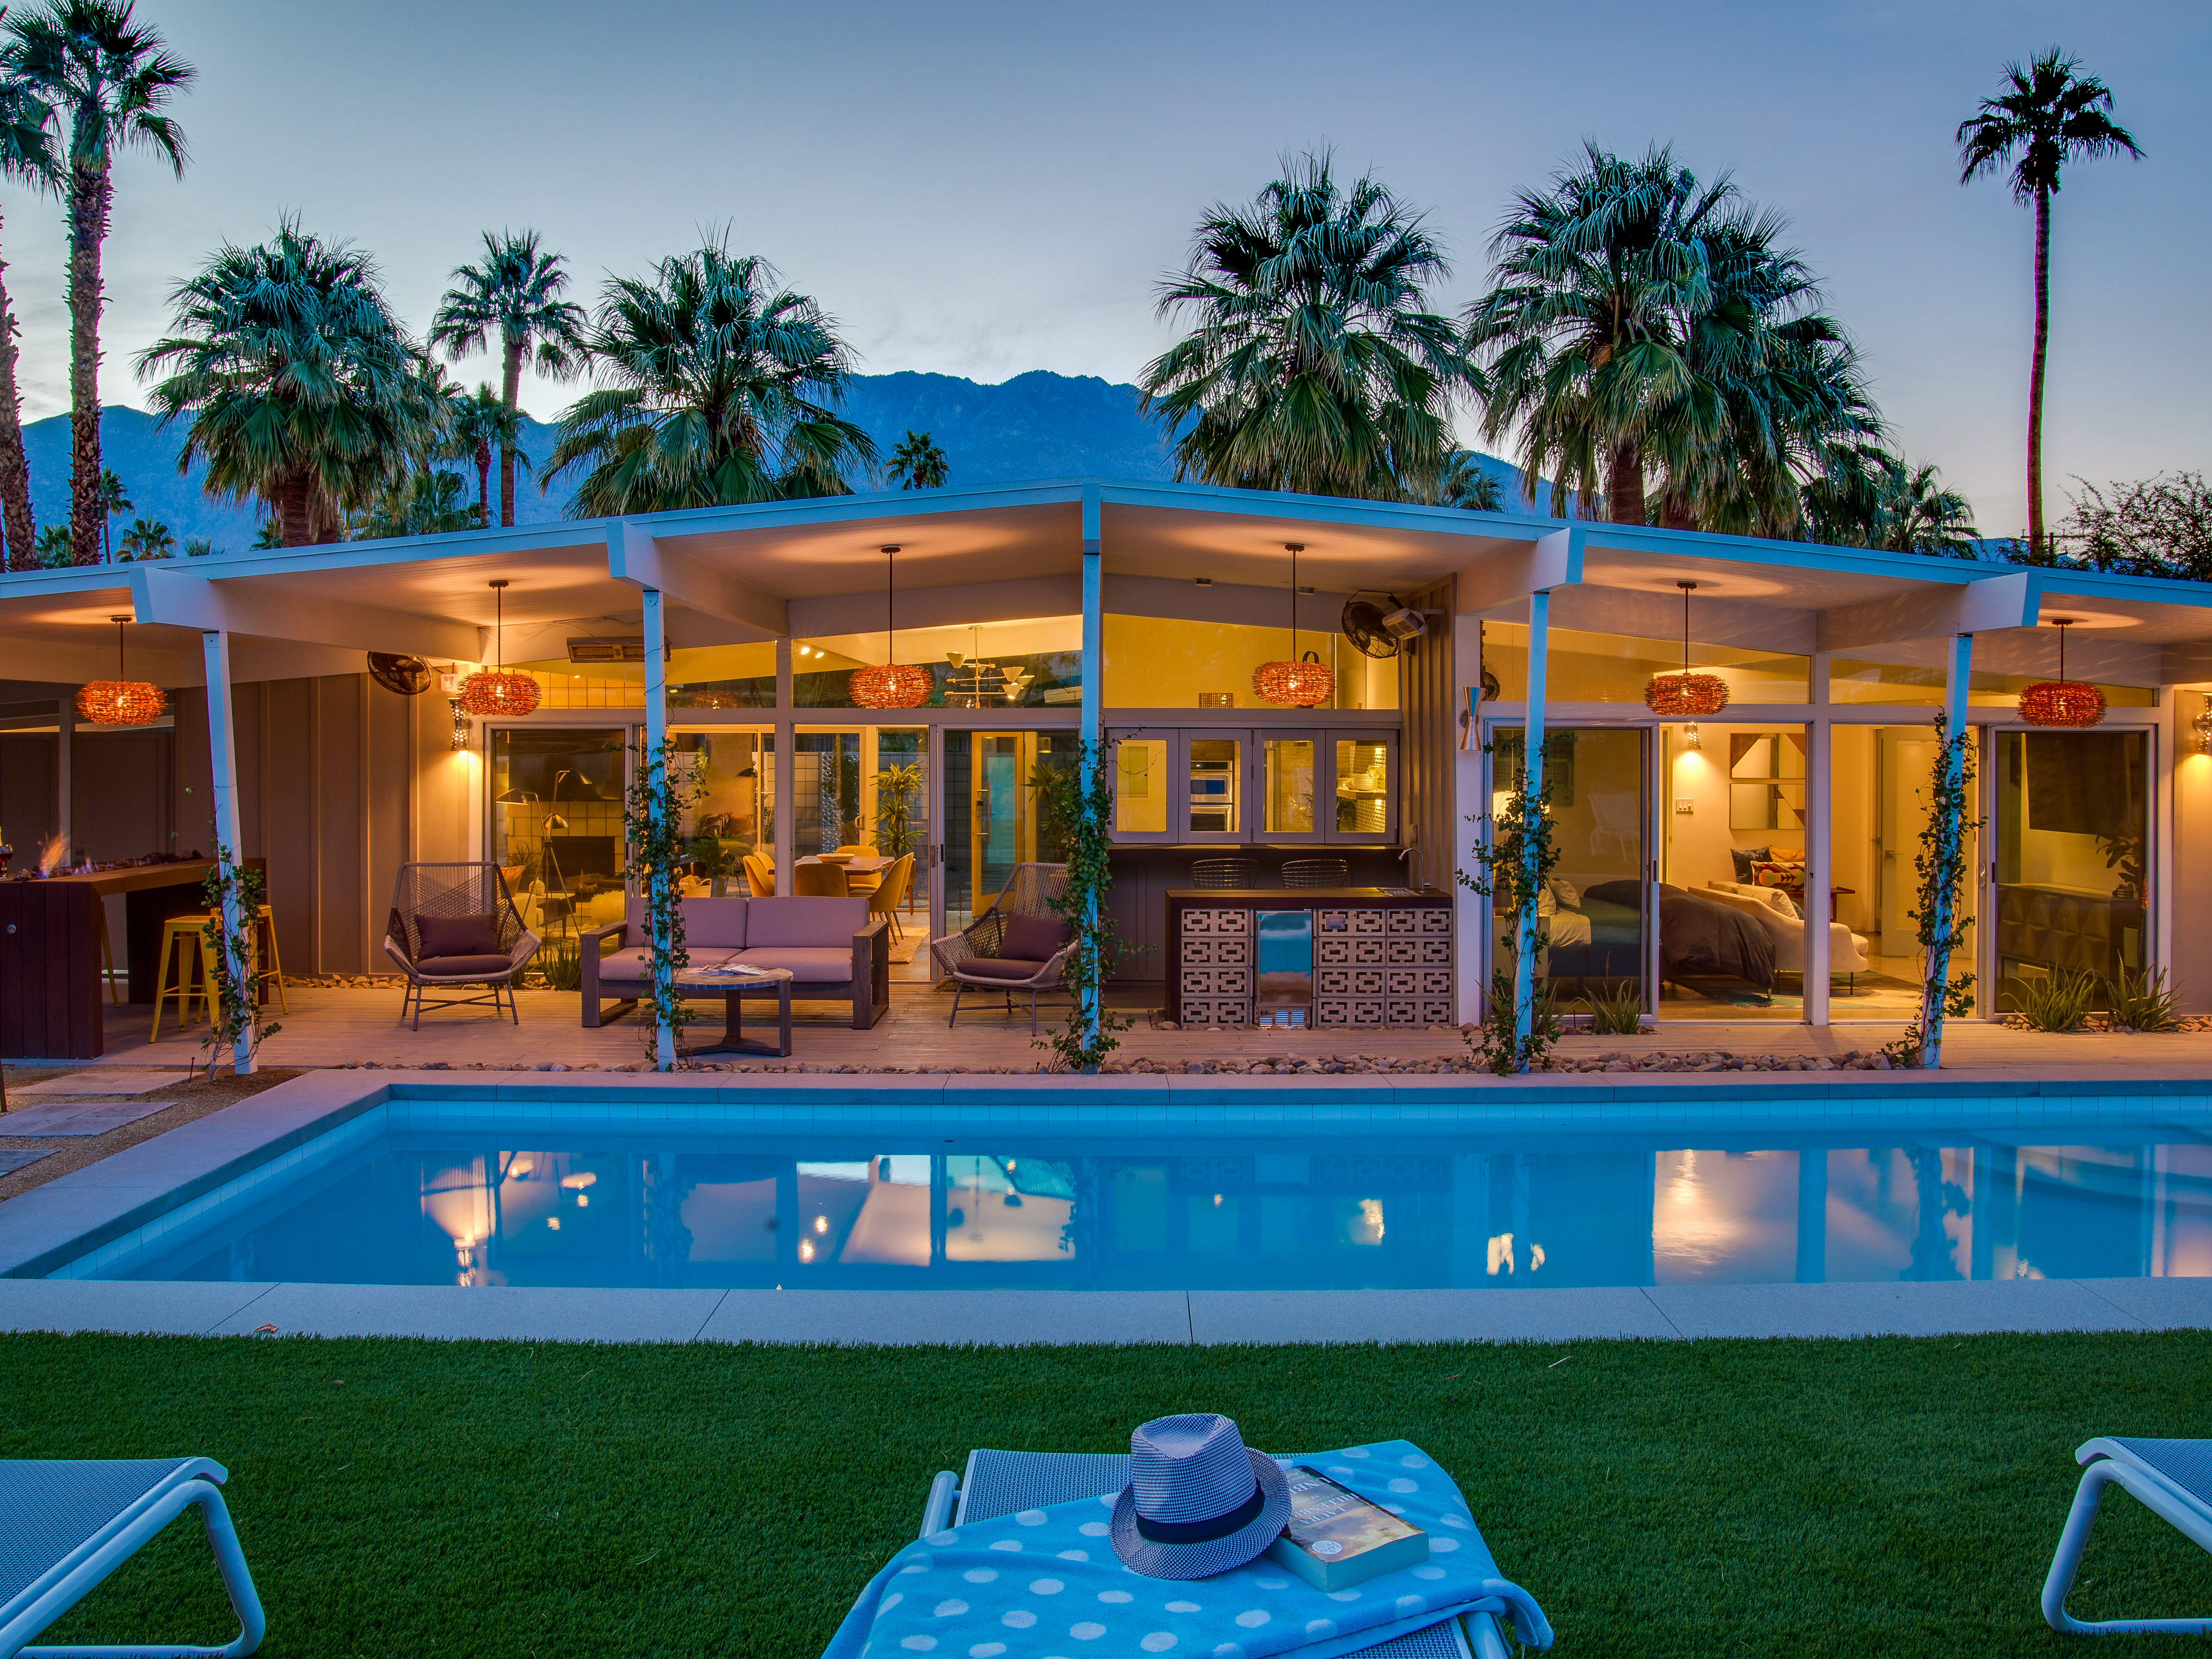 The West Elm House - Palm Springs Vacation Home Rental